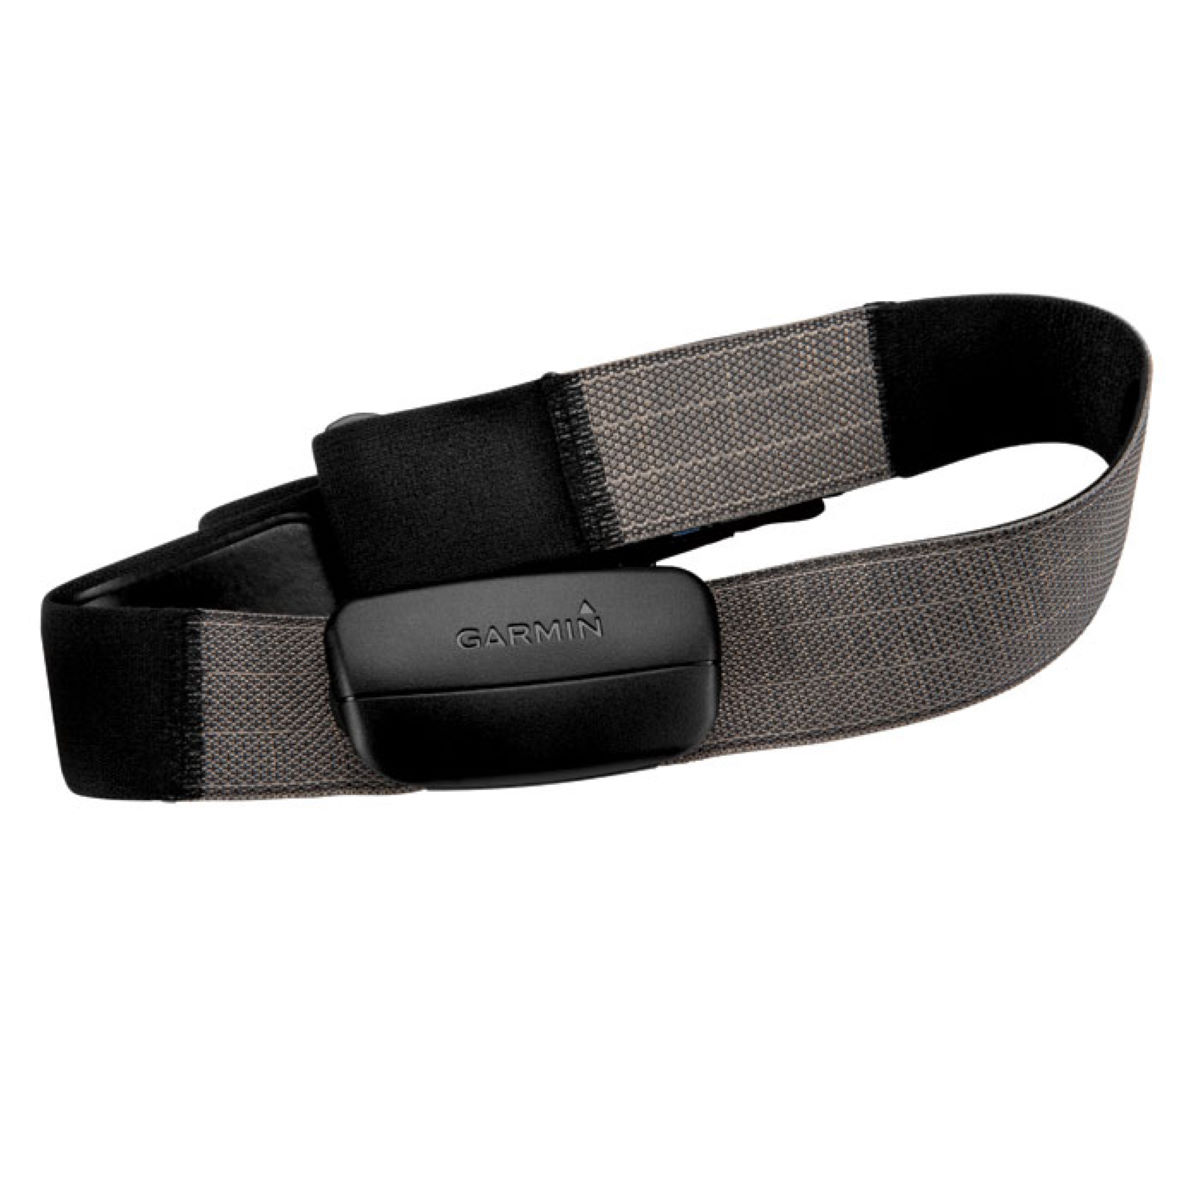 Garmin Premium Heart Rate Monitor Strap   Heart Rate Monitors